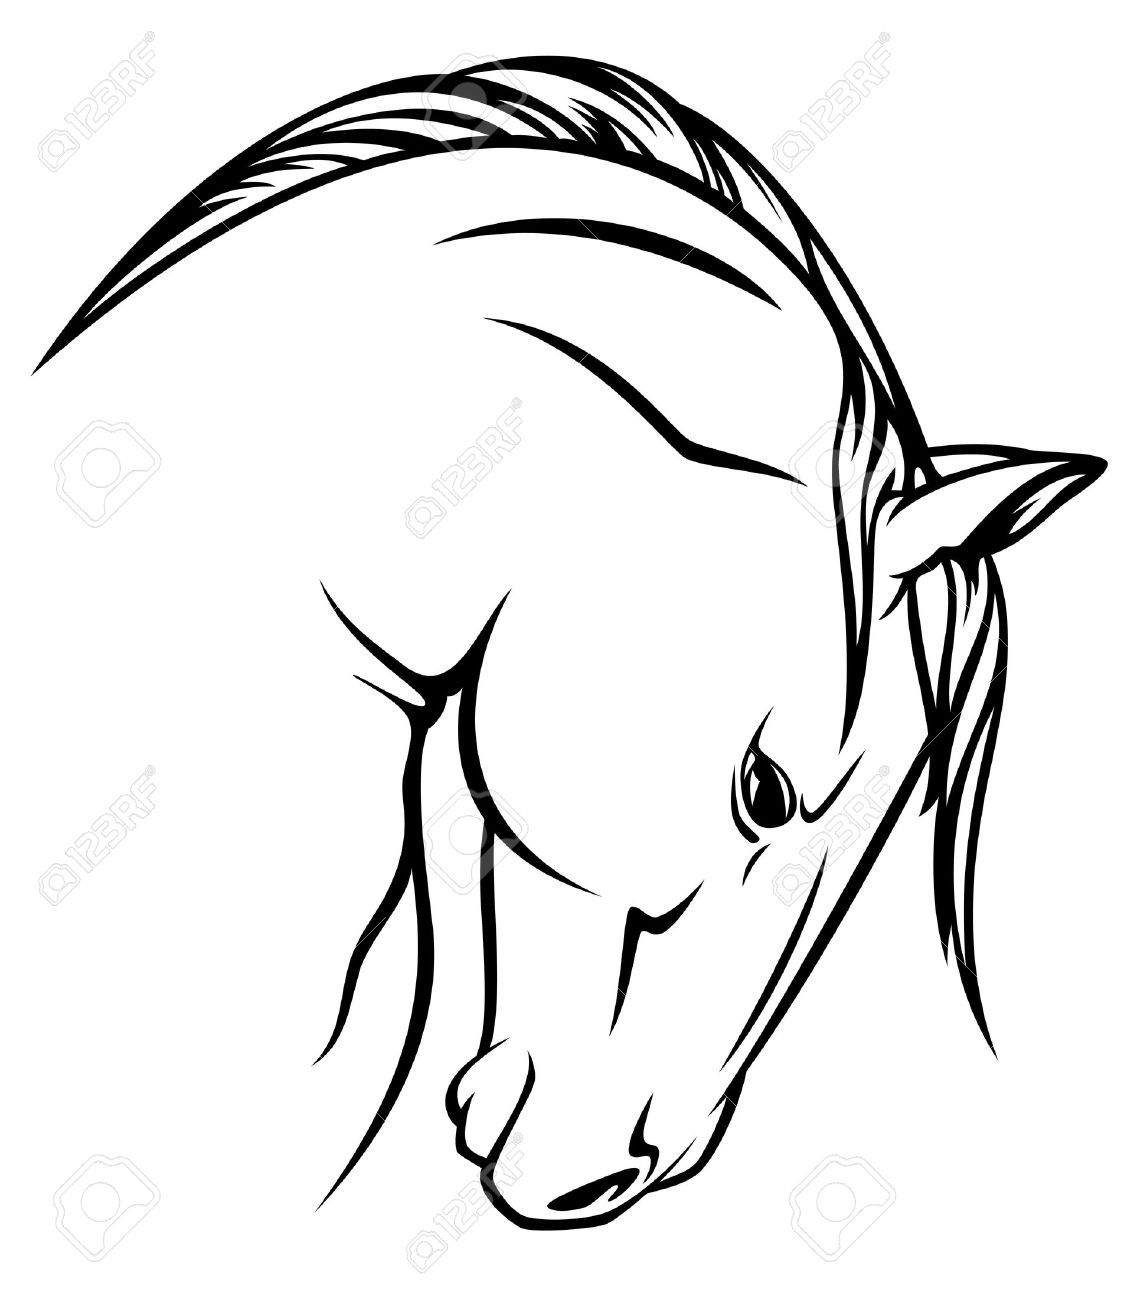 Profile of buffalo blackk and white clipart png transparent stock Buffalo Outline Drawing   Free download best Buffalo Outline ... png transparent stock